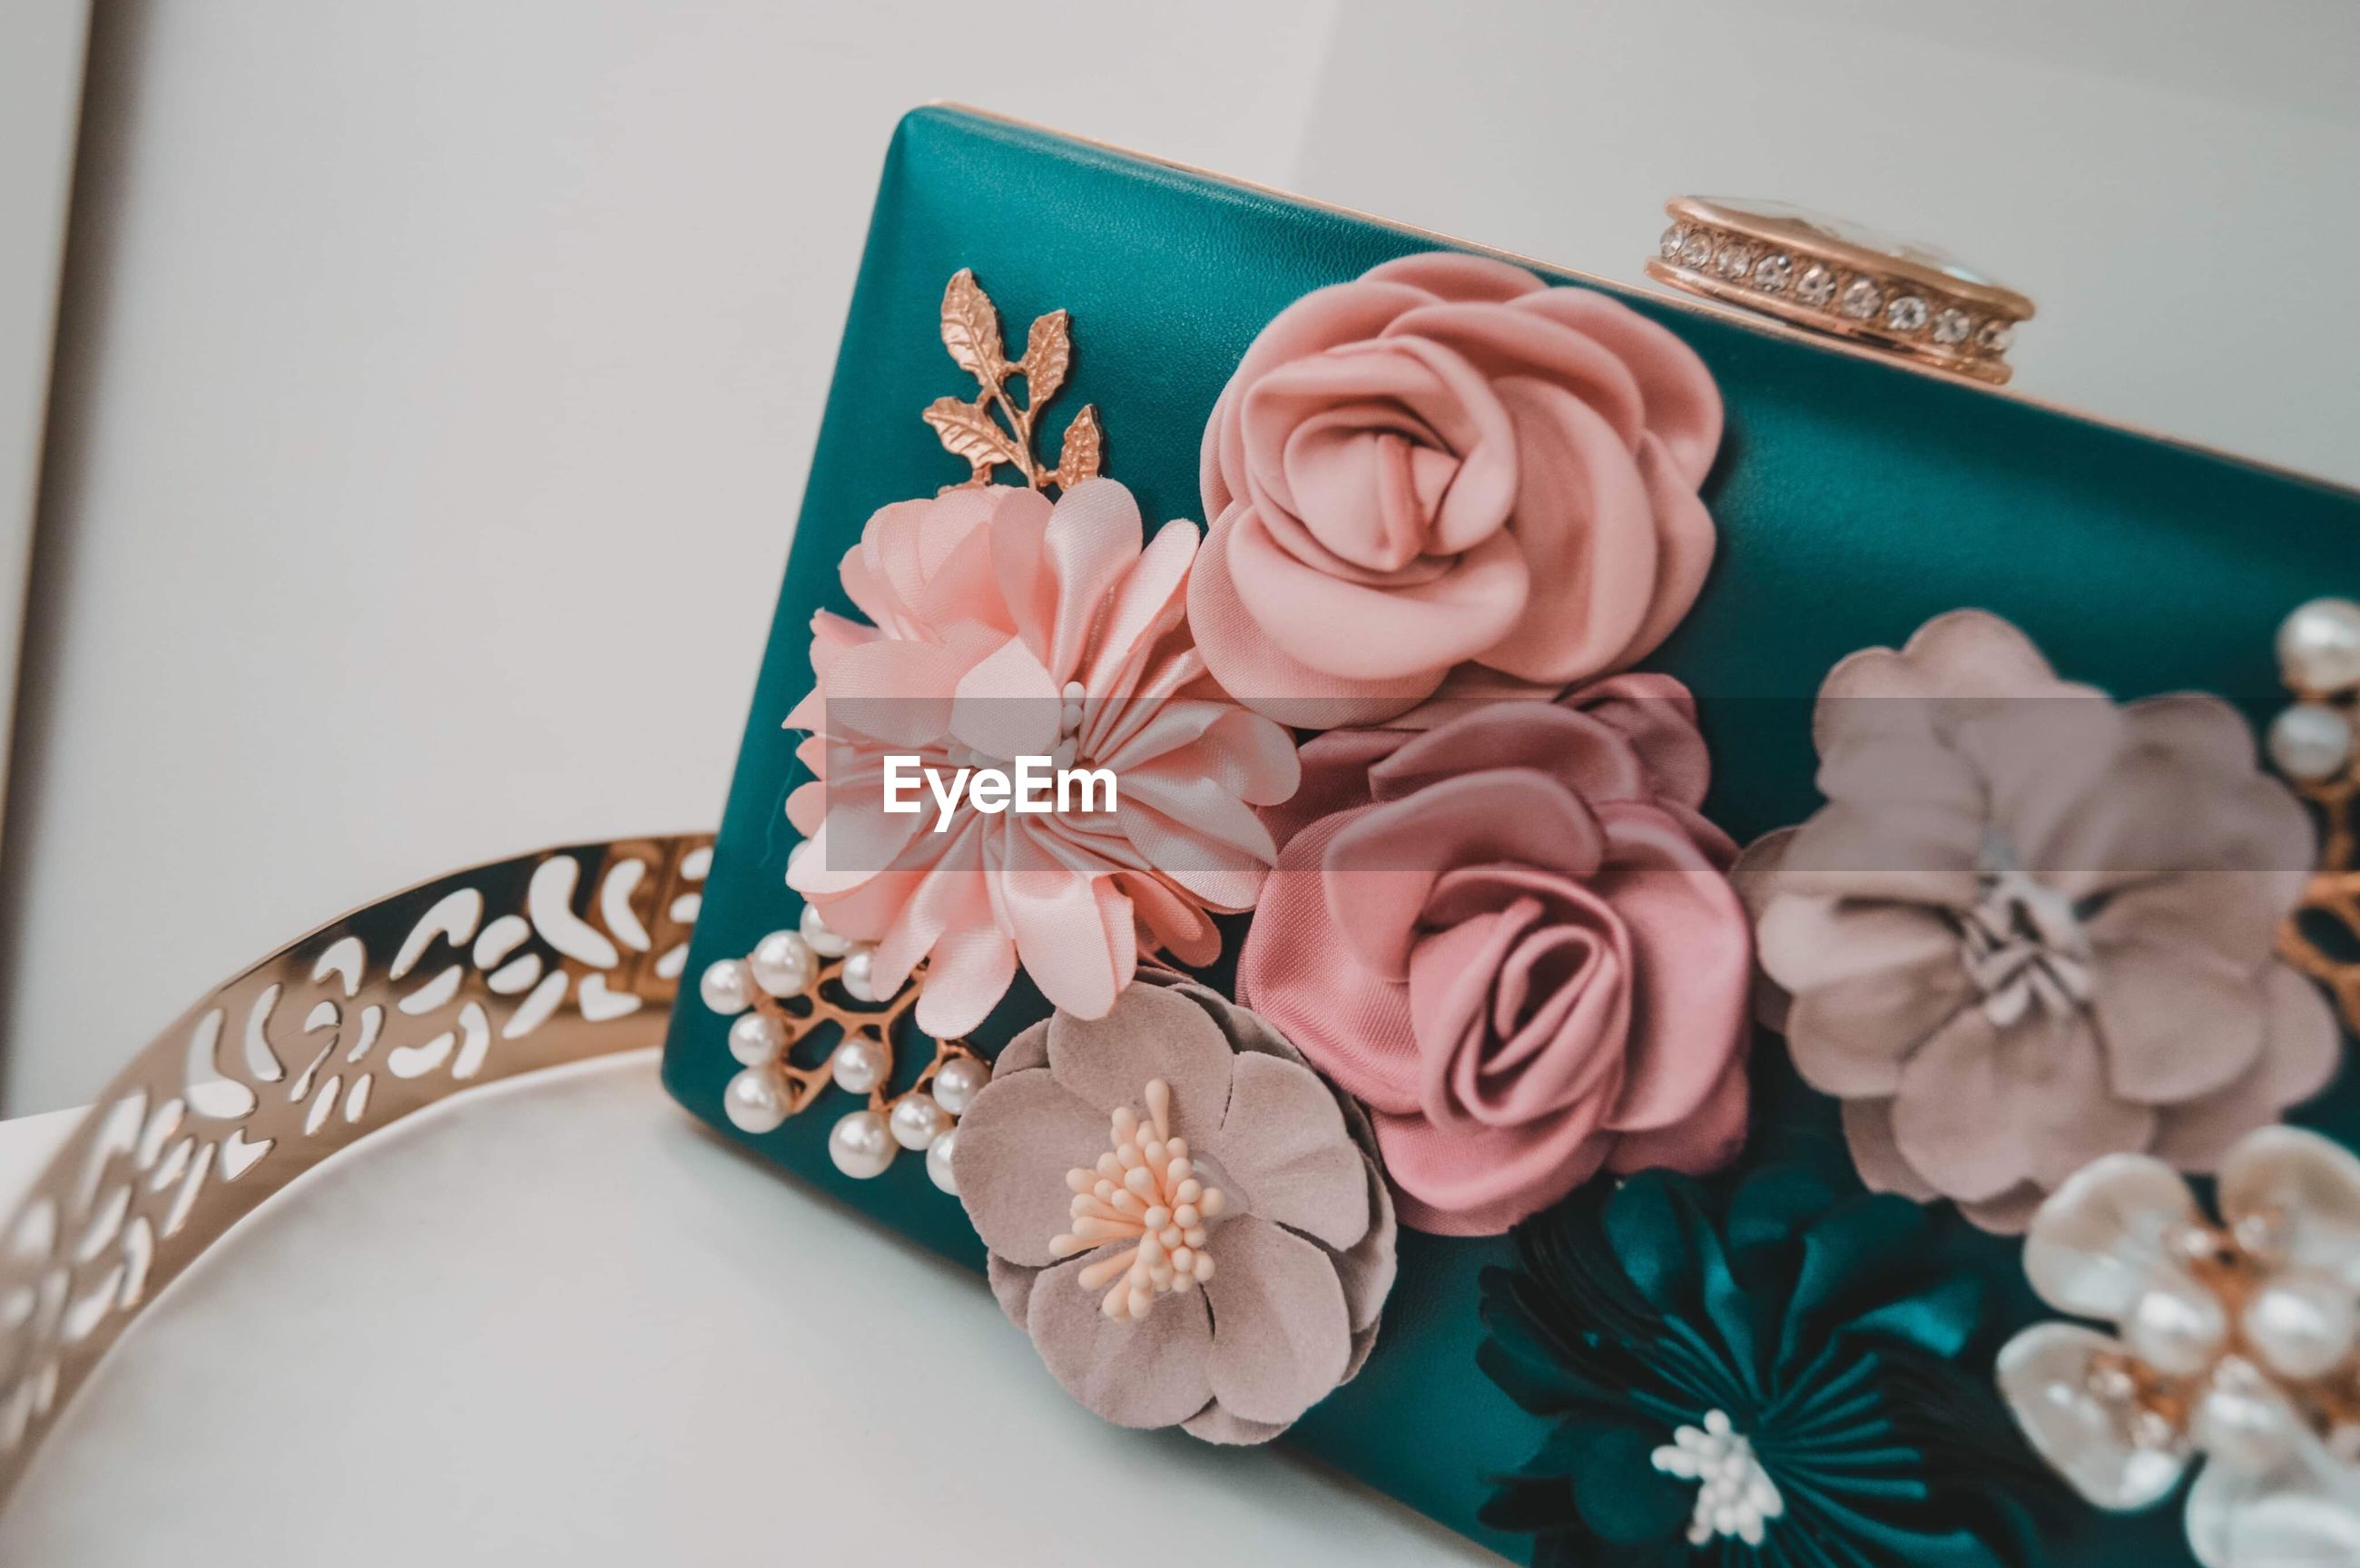 HIGH ANGLE VIEW OF ROSES IN BOUQUET ON TABLE